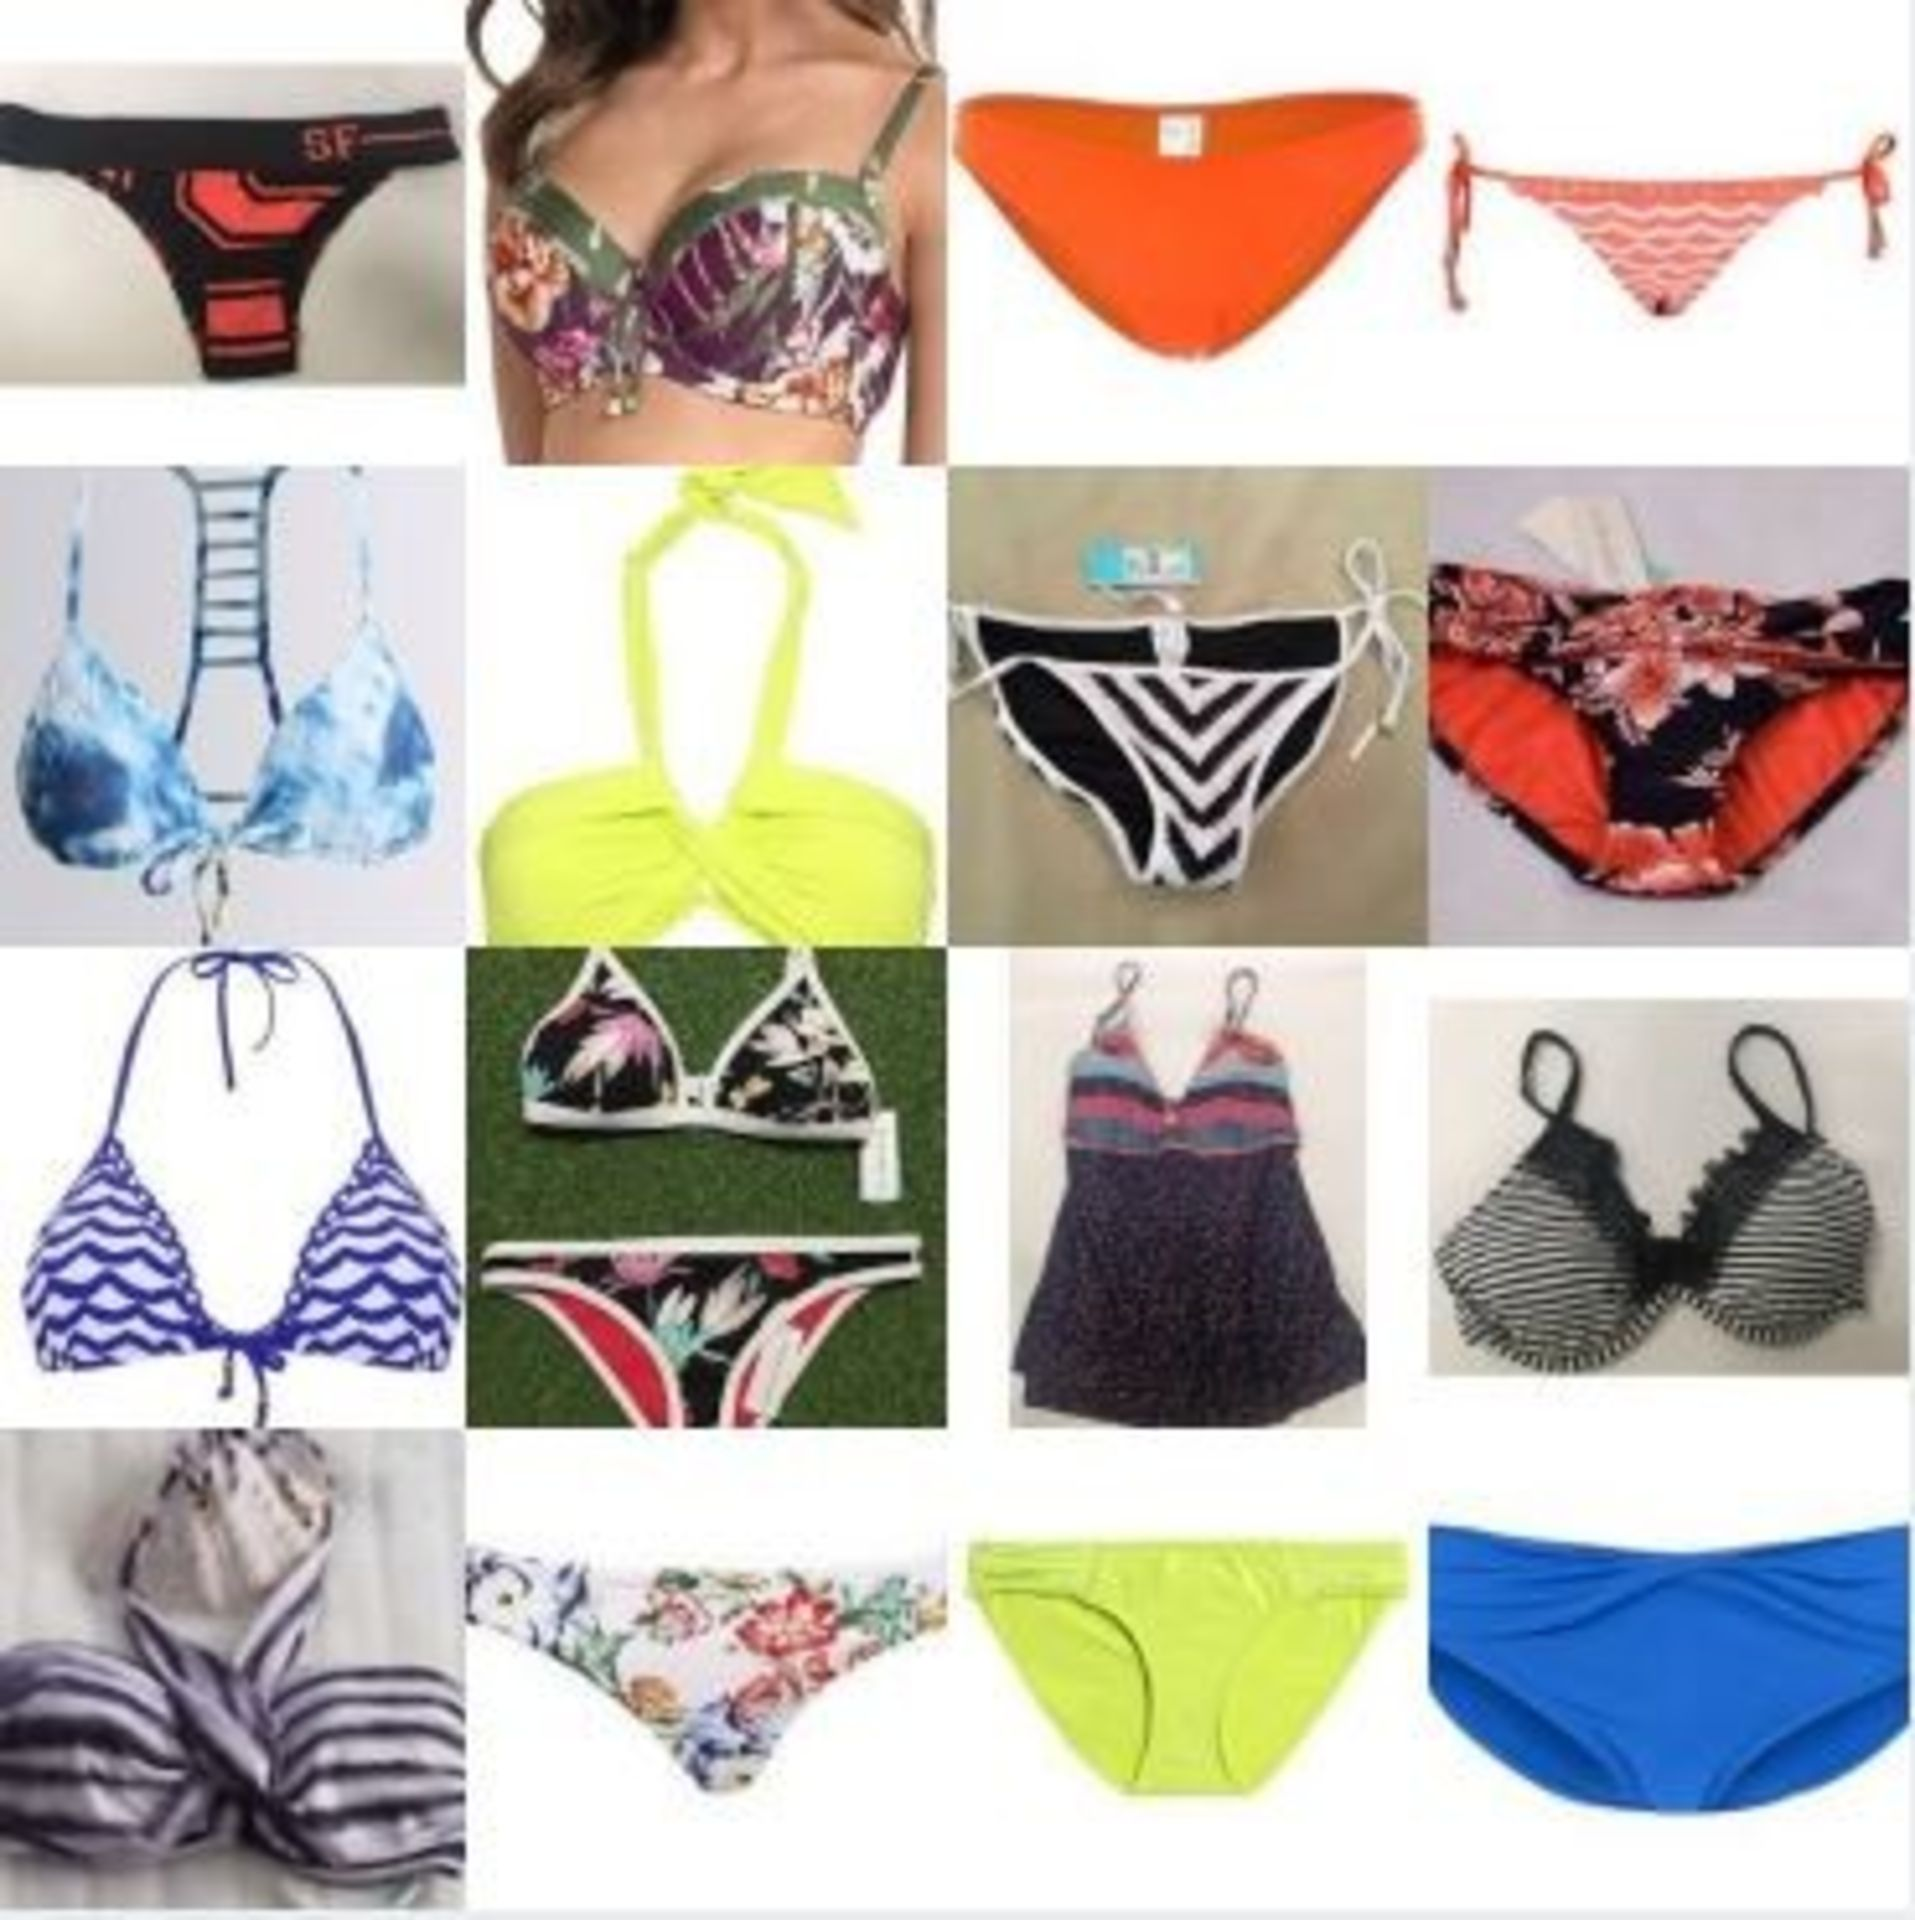 Lot 37 - Sourced From Big Brand Bikini Manufacturer SeaFolly: